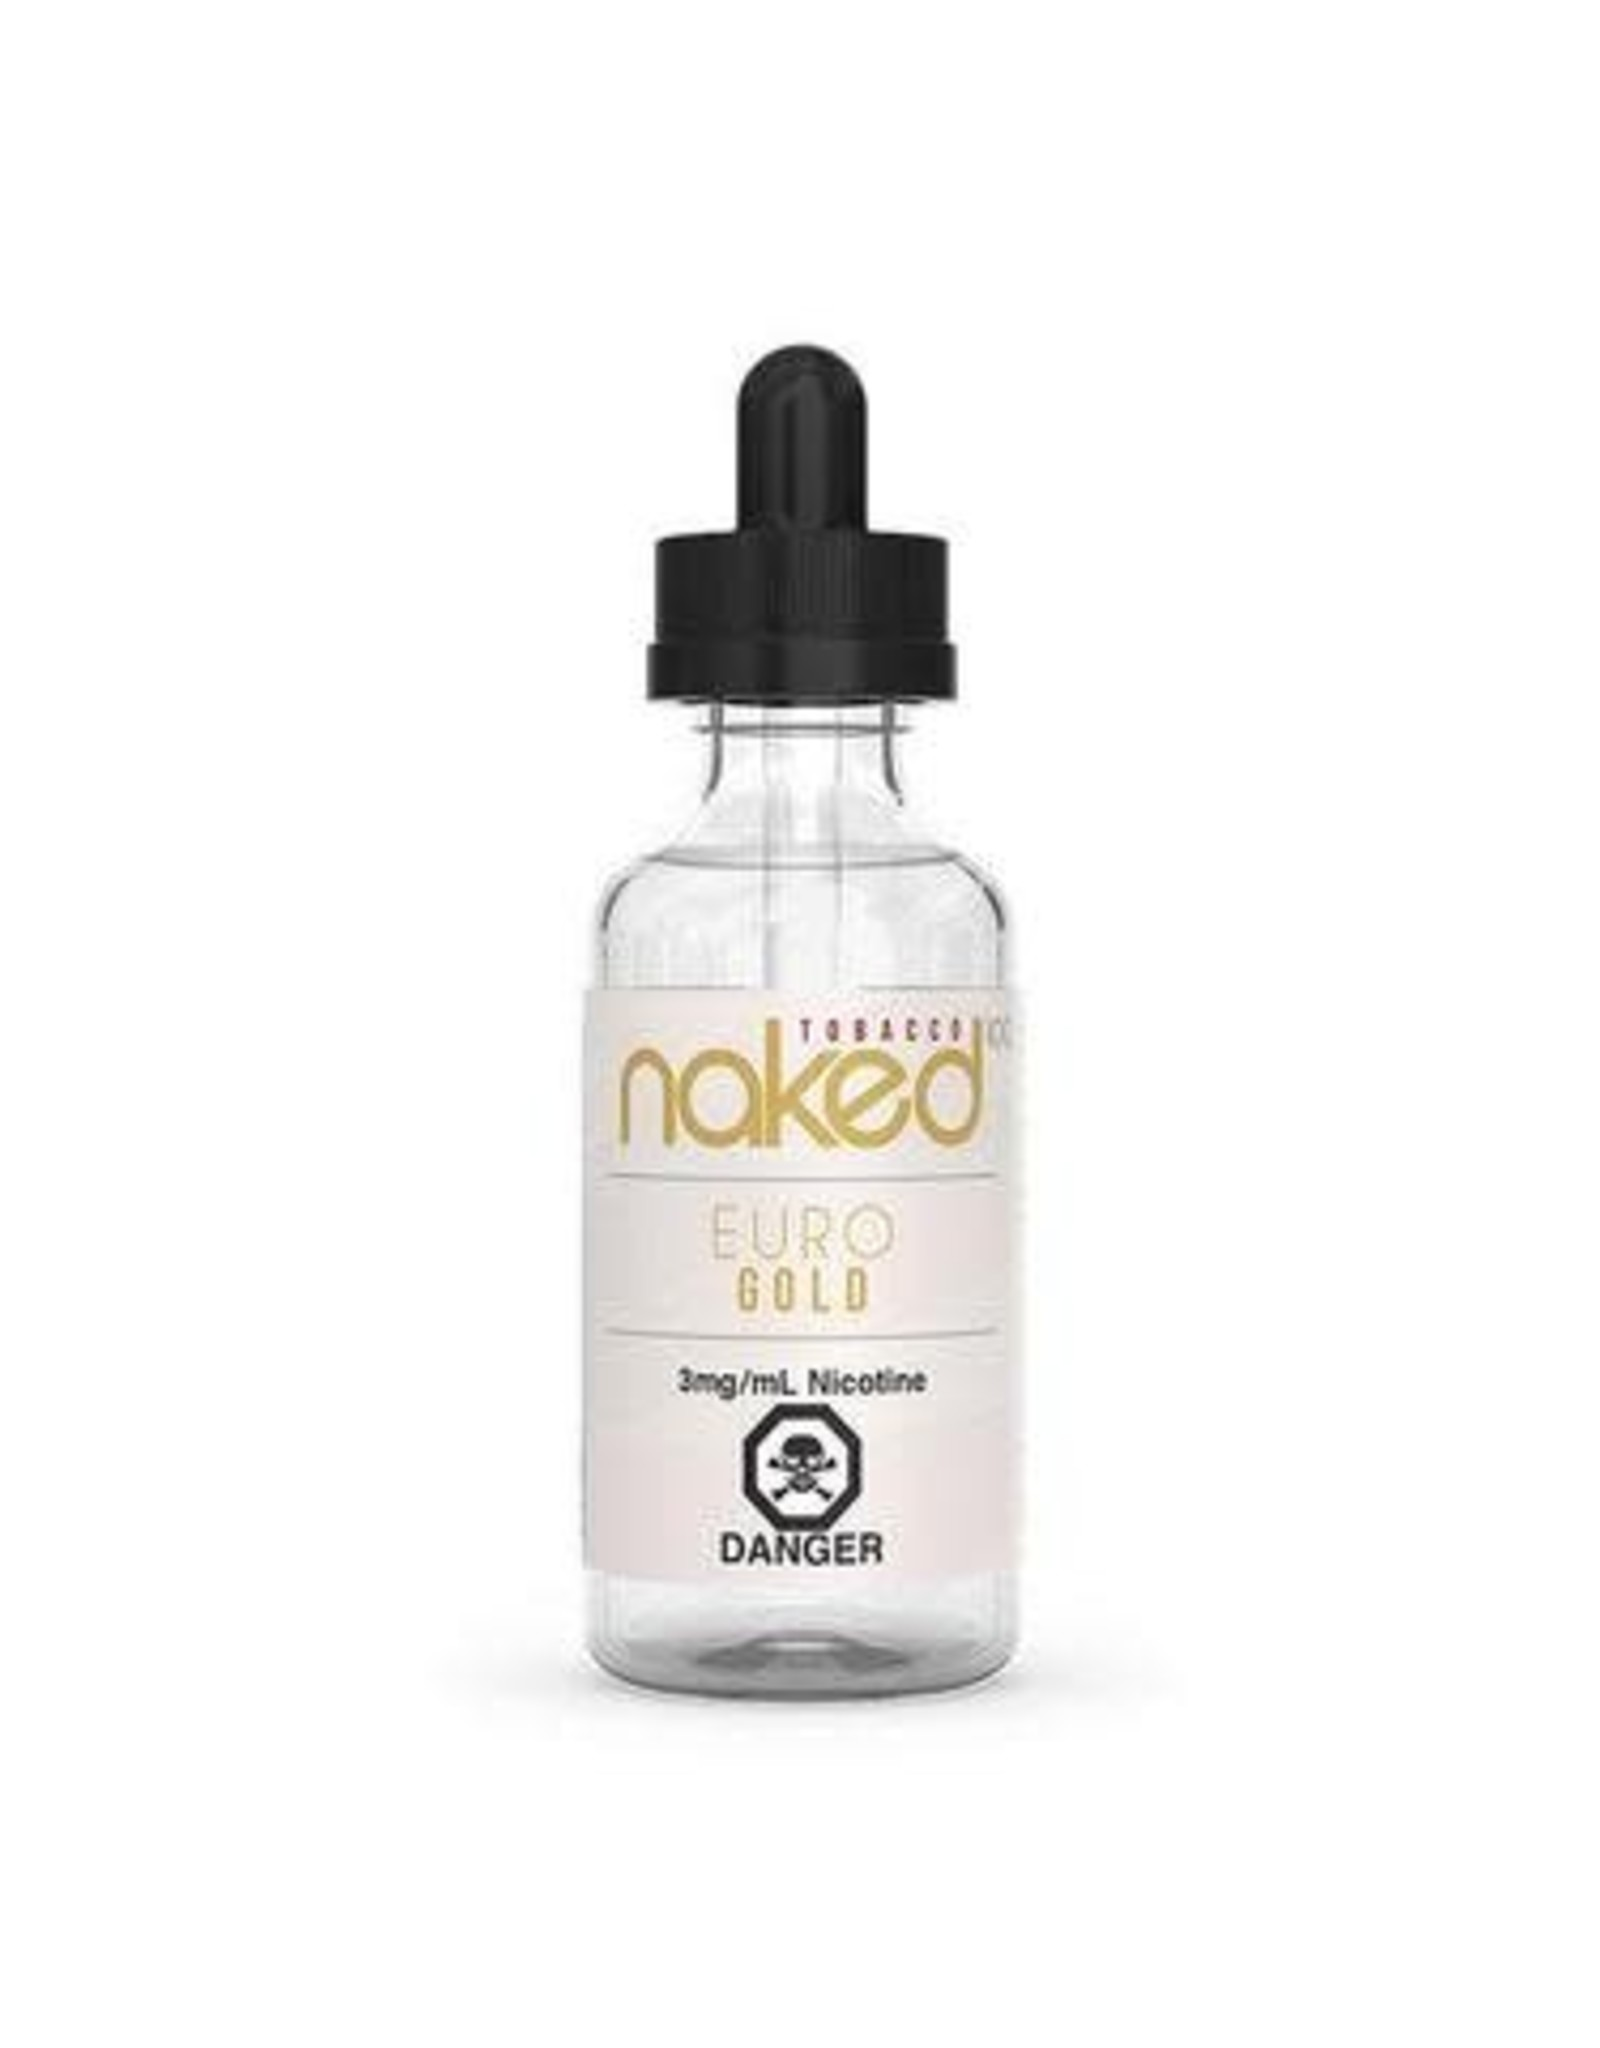 NAKED100 TOBACCO EURO GOLD BY NAKED100(60ml)